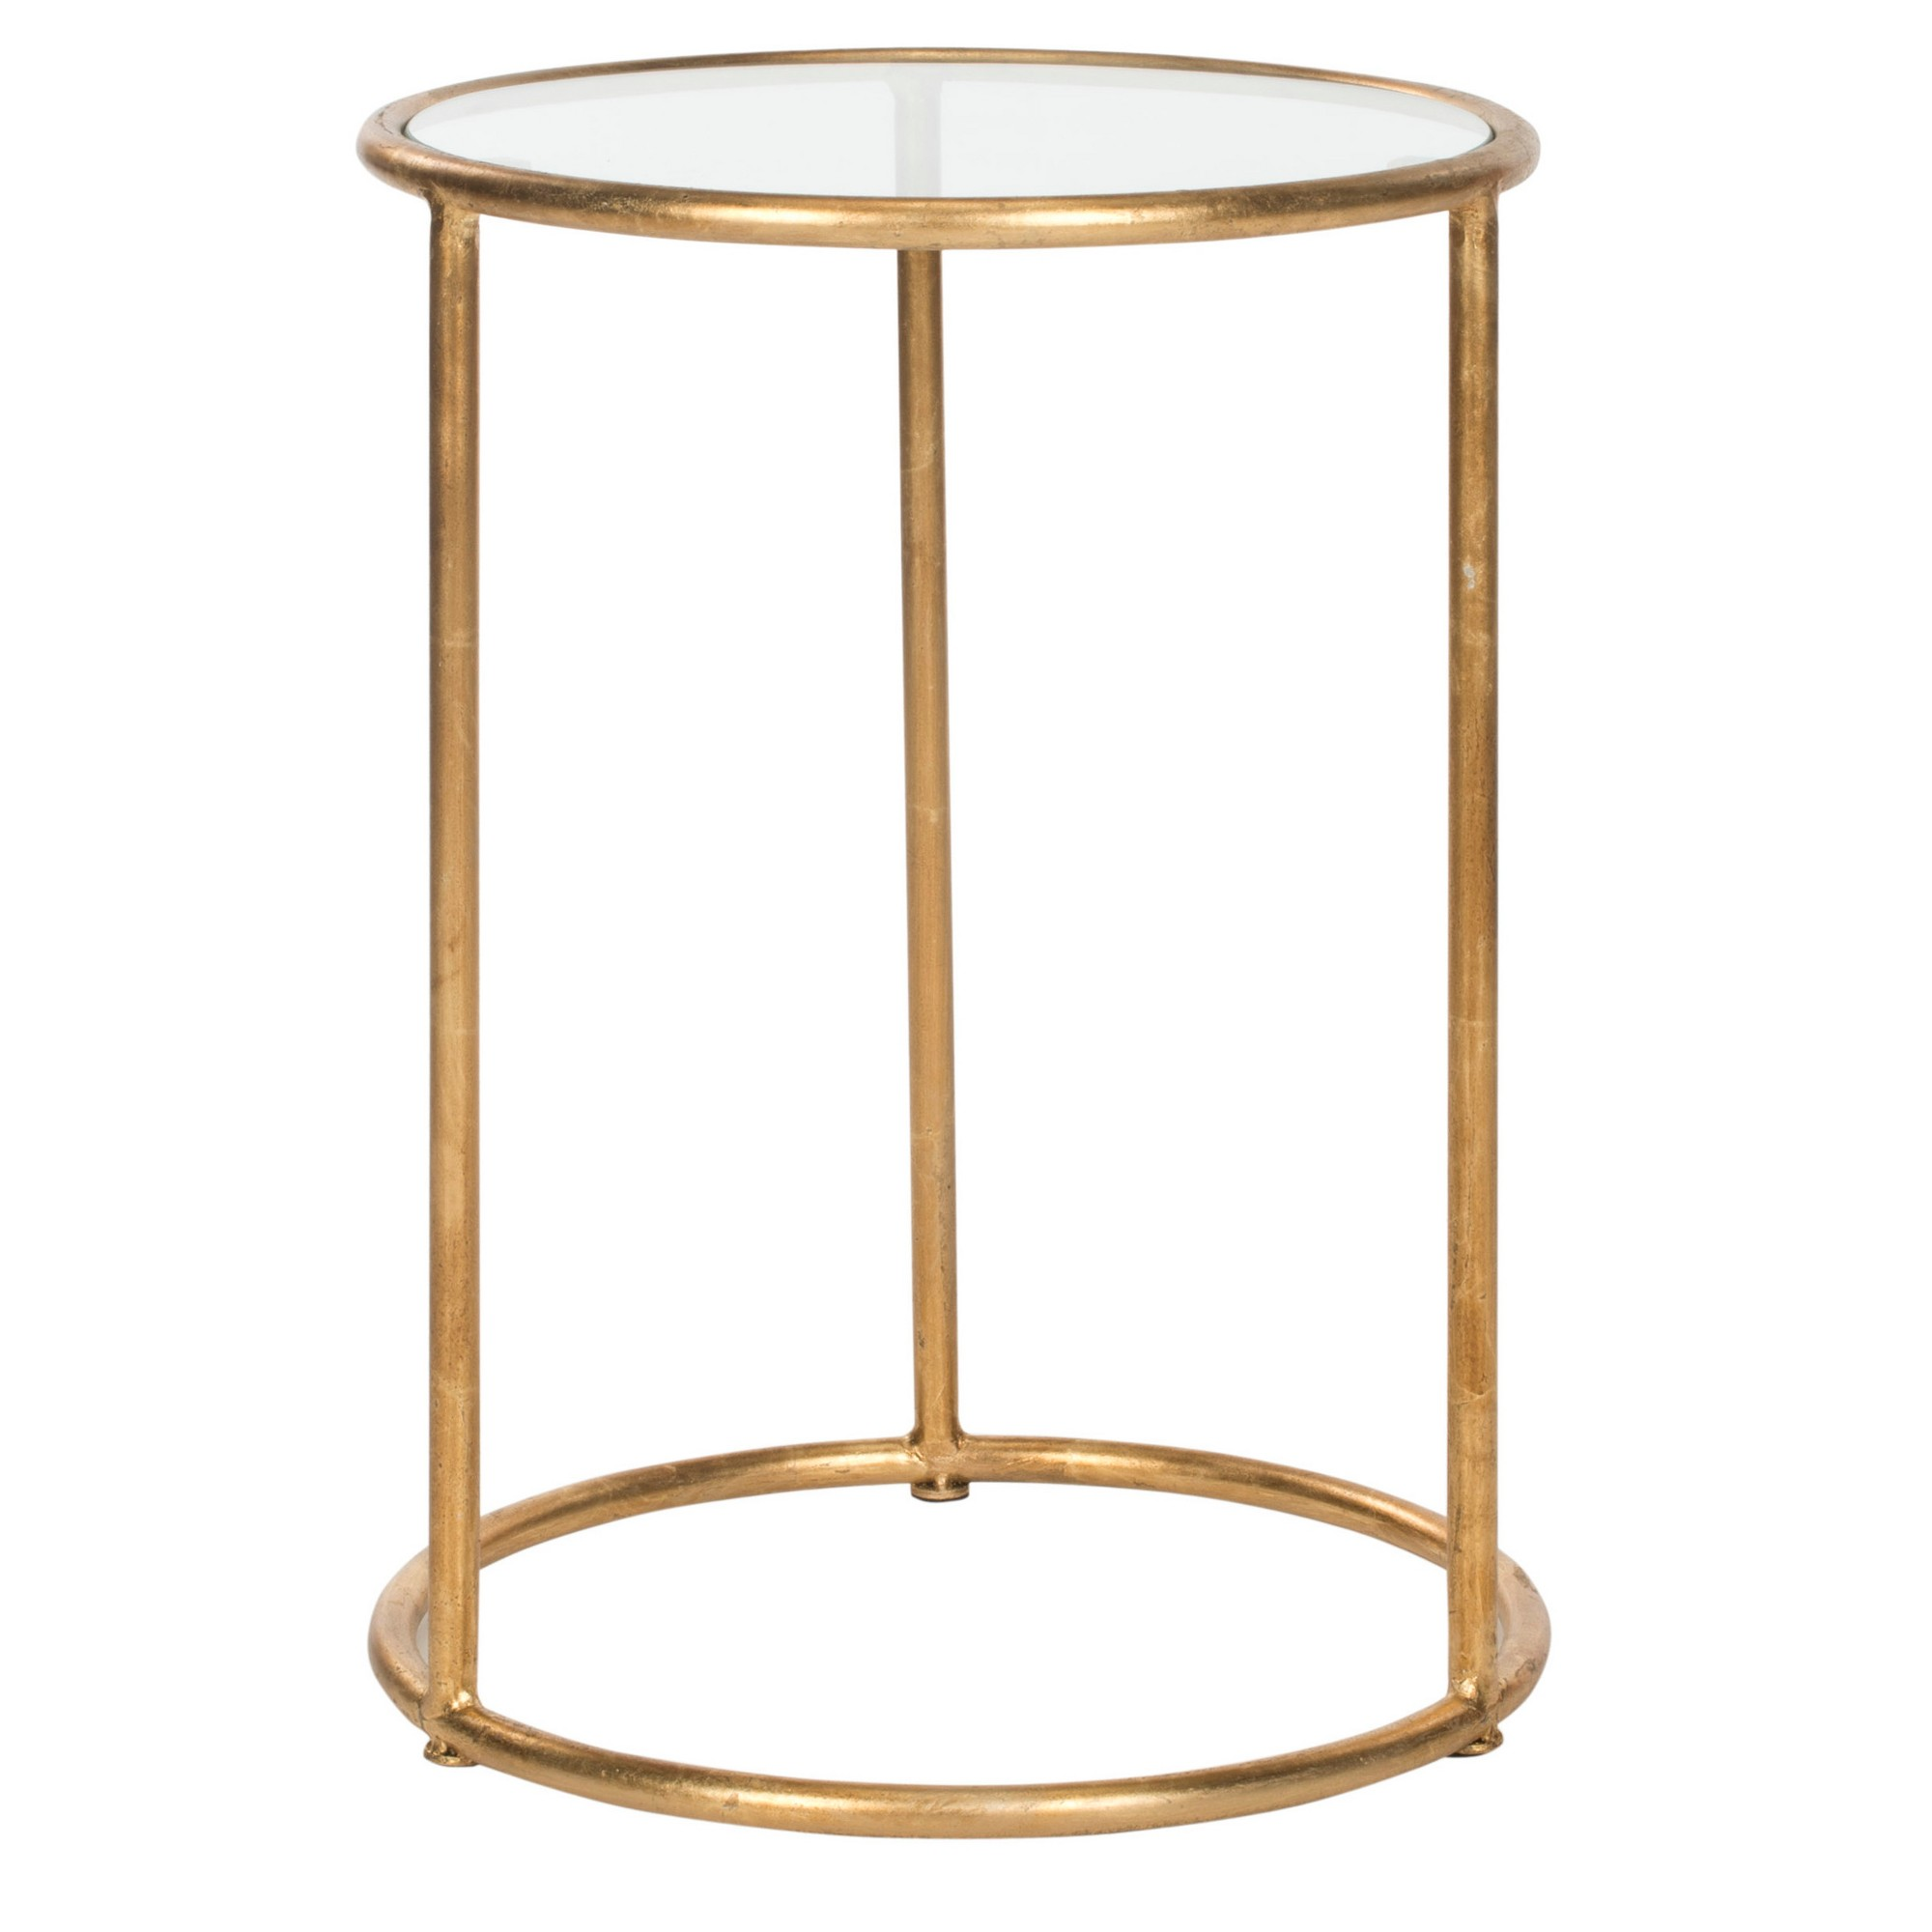 shay accent table gold safavieh products decorative mirrors small dresser target blue home accessories fur furniture solid pine bedroom mirrored bedside lockers metal carpet